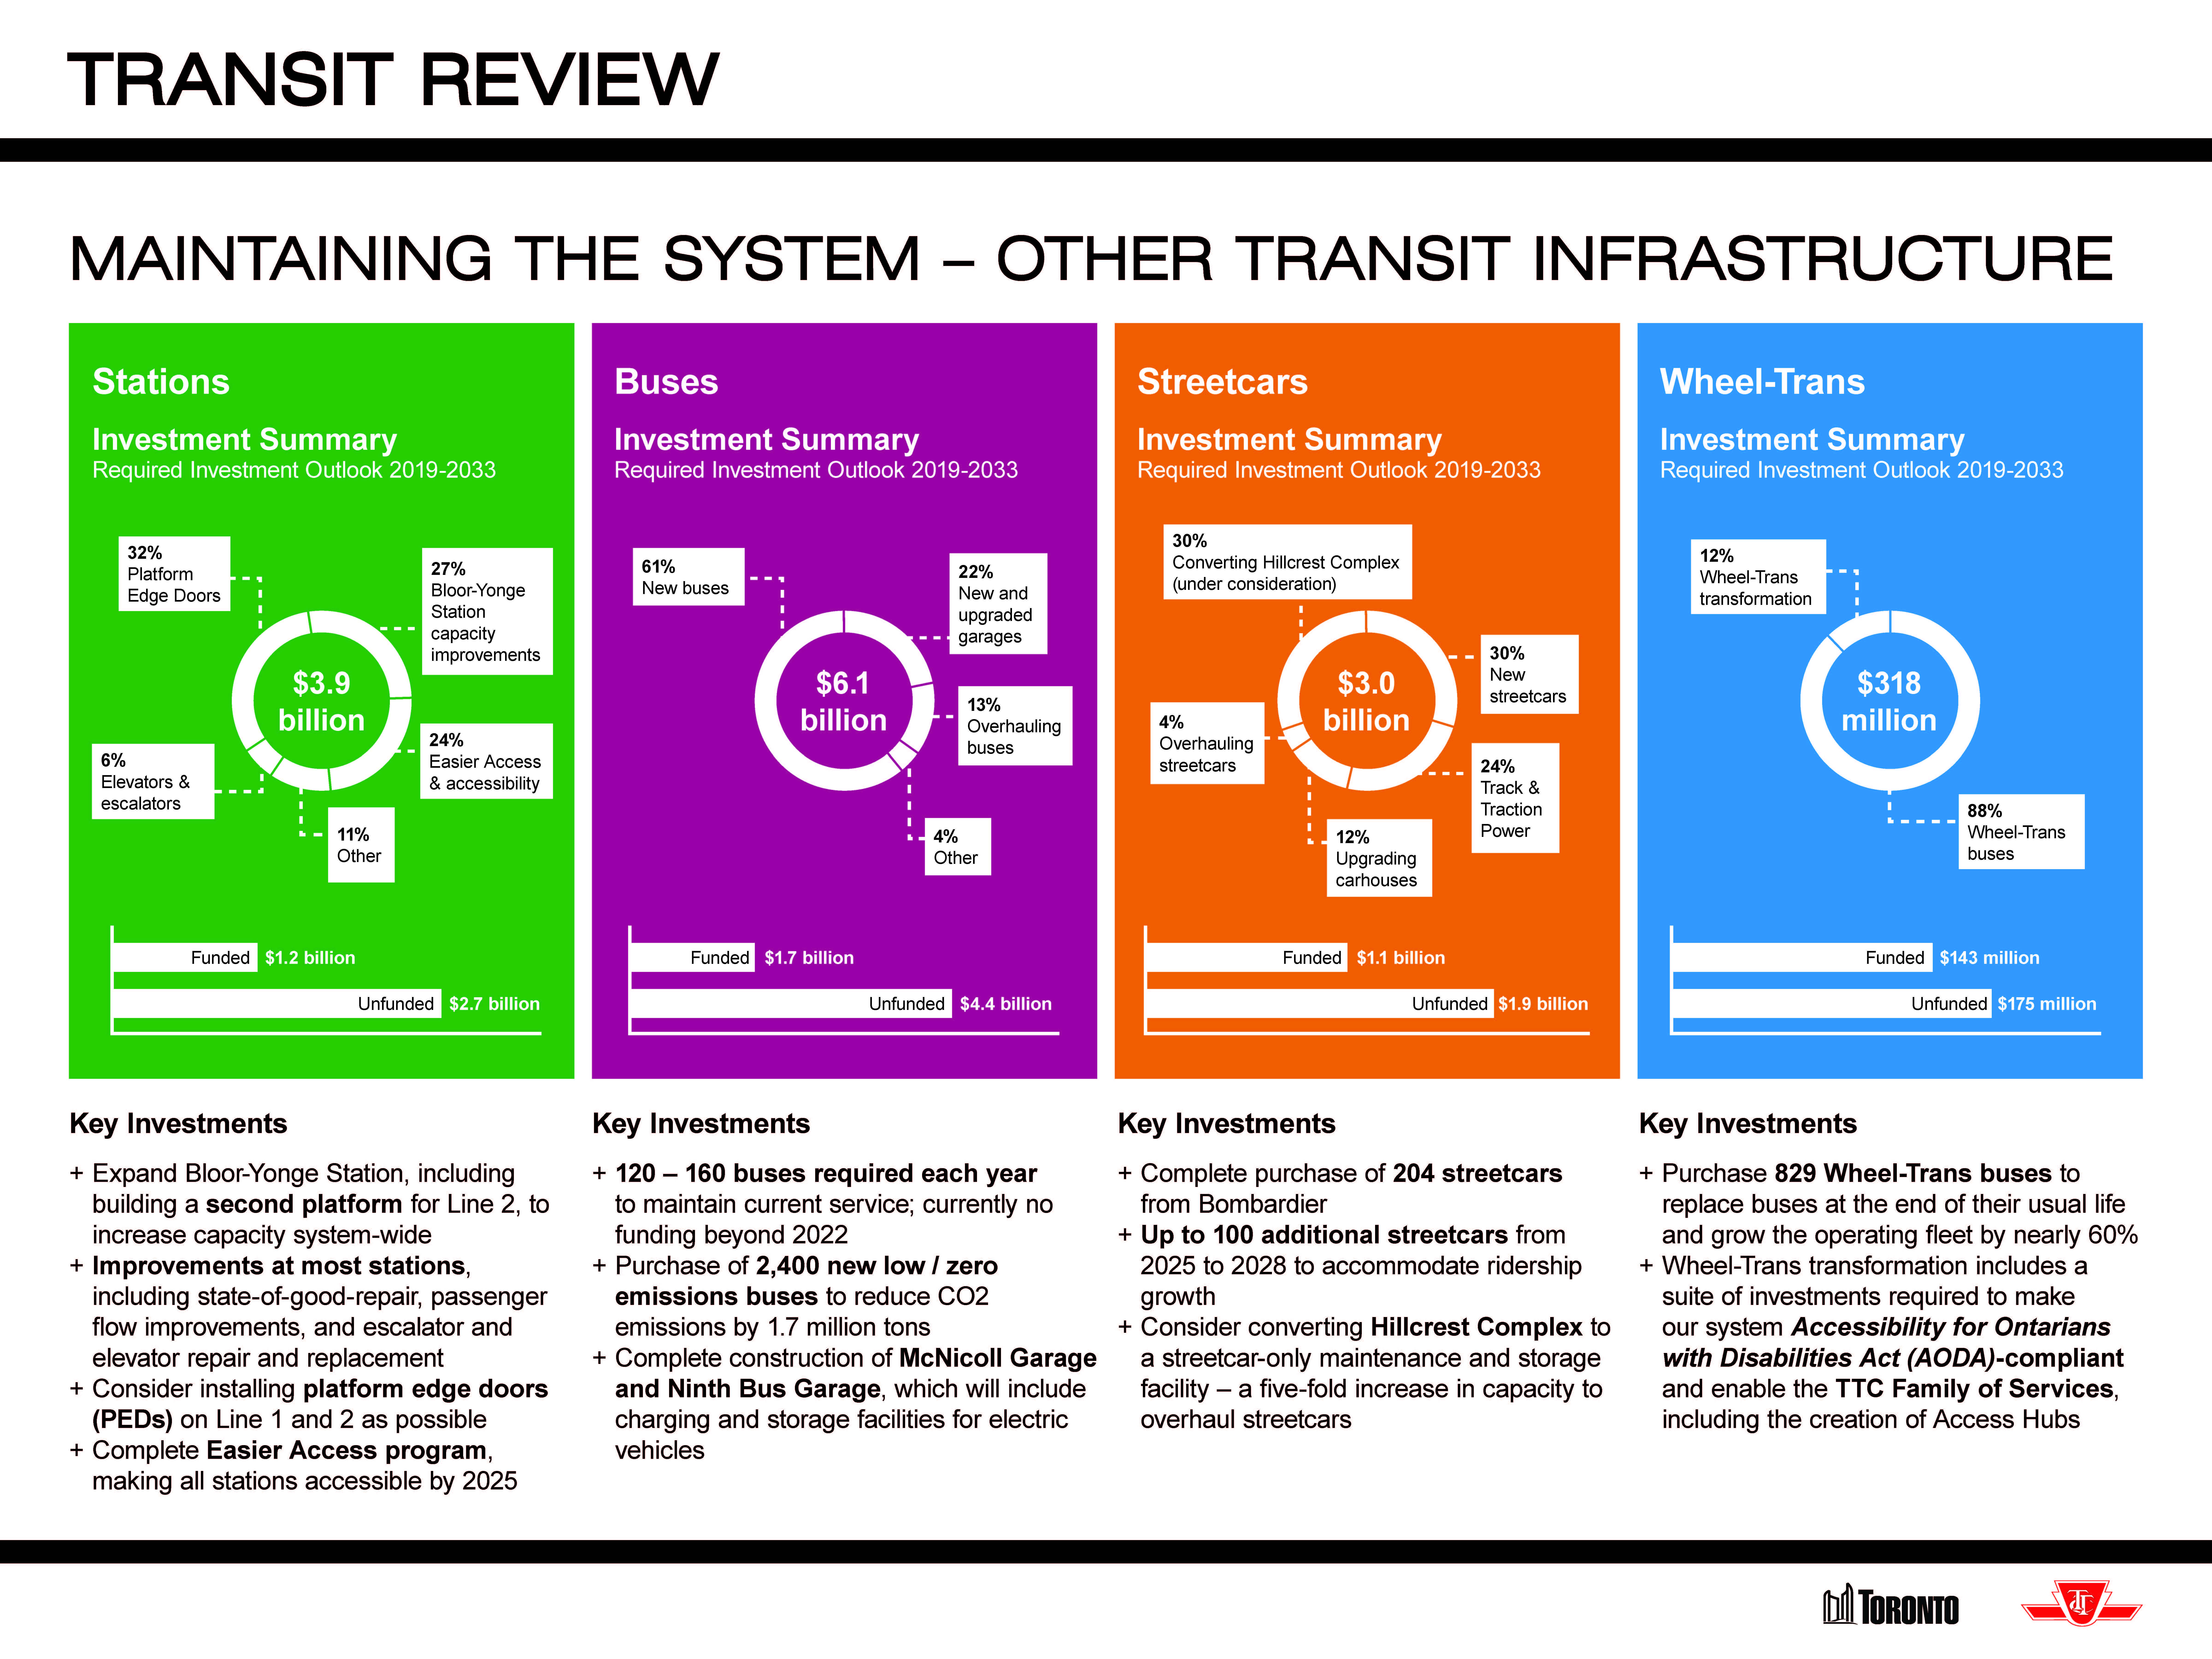 Maintaining the system, other transit infrastructure. Image has four sections - stations, buses, streetcars and wheel-trans. The image describes key investments for each. For more information on maintaining the system, read TTC's Capital Investment Plan for 2019 – 2023. Link here: https://www.ttc.ca/Coupler/PDFs/TTC%20Capital%20Investment%20Plan%202019-2033.pdf